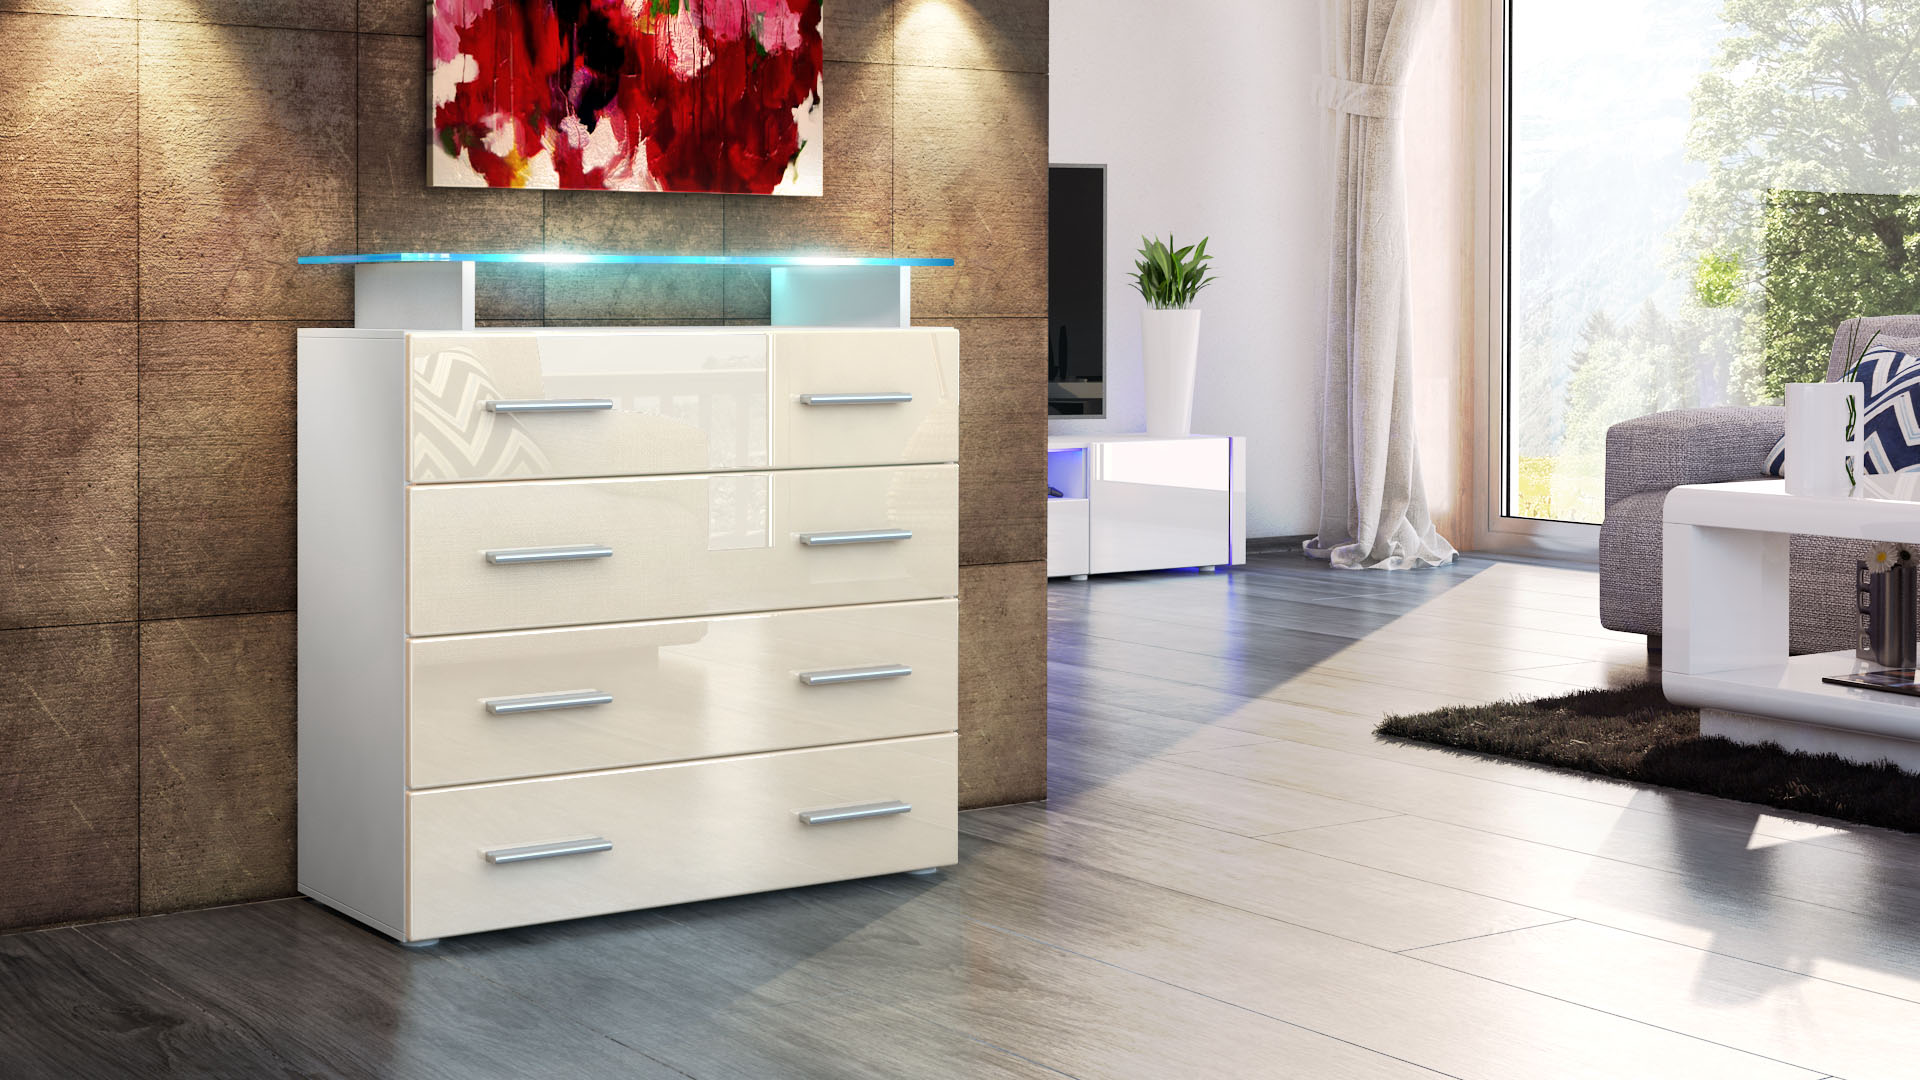 kommode schrank anrichte sideboard pavos v2 in wei hochglanz naturt ne ebay. Black Bedroom Furniture Sets. Home Design Ideas